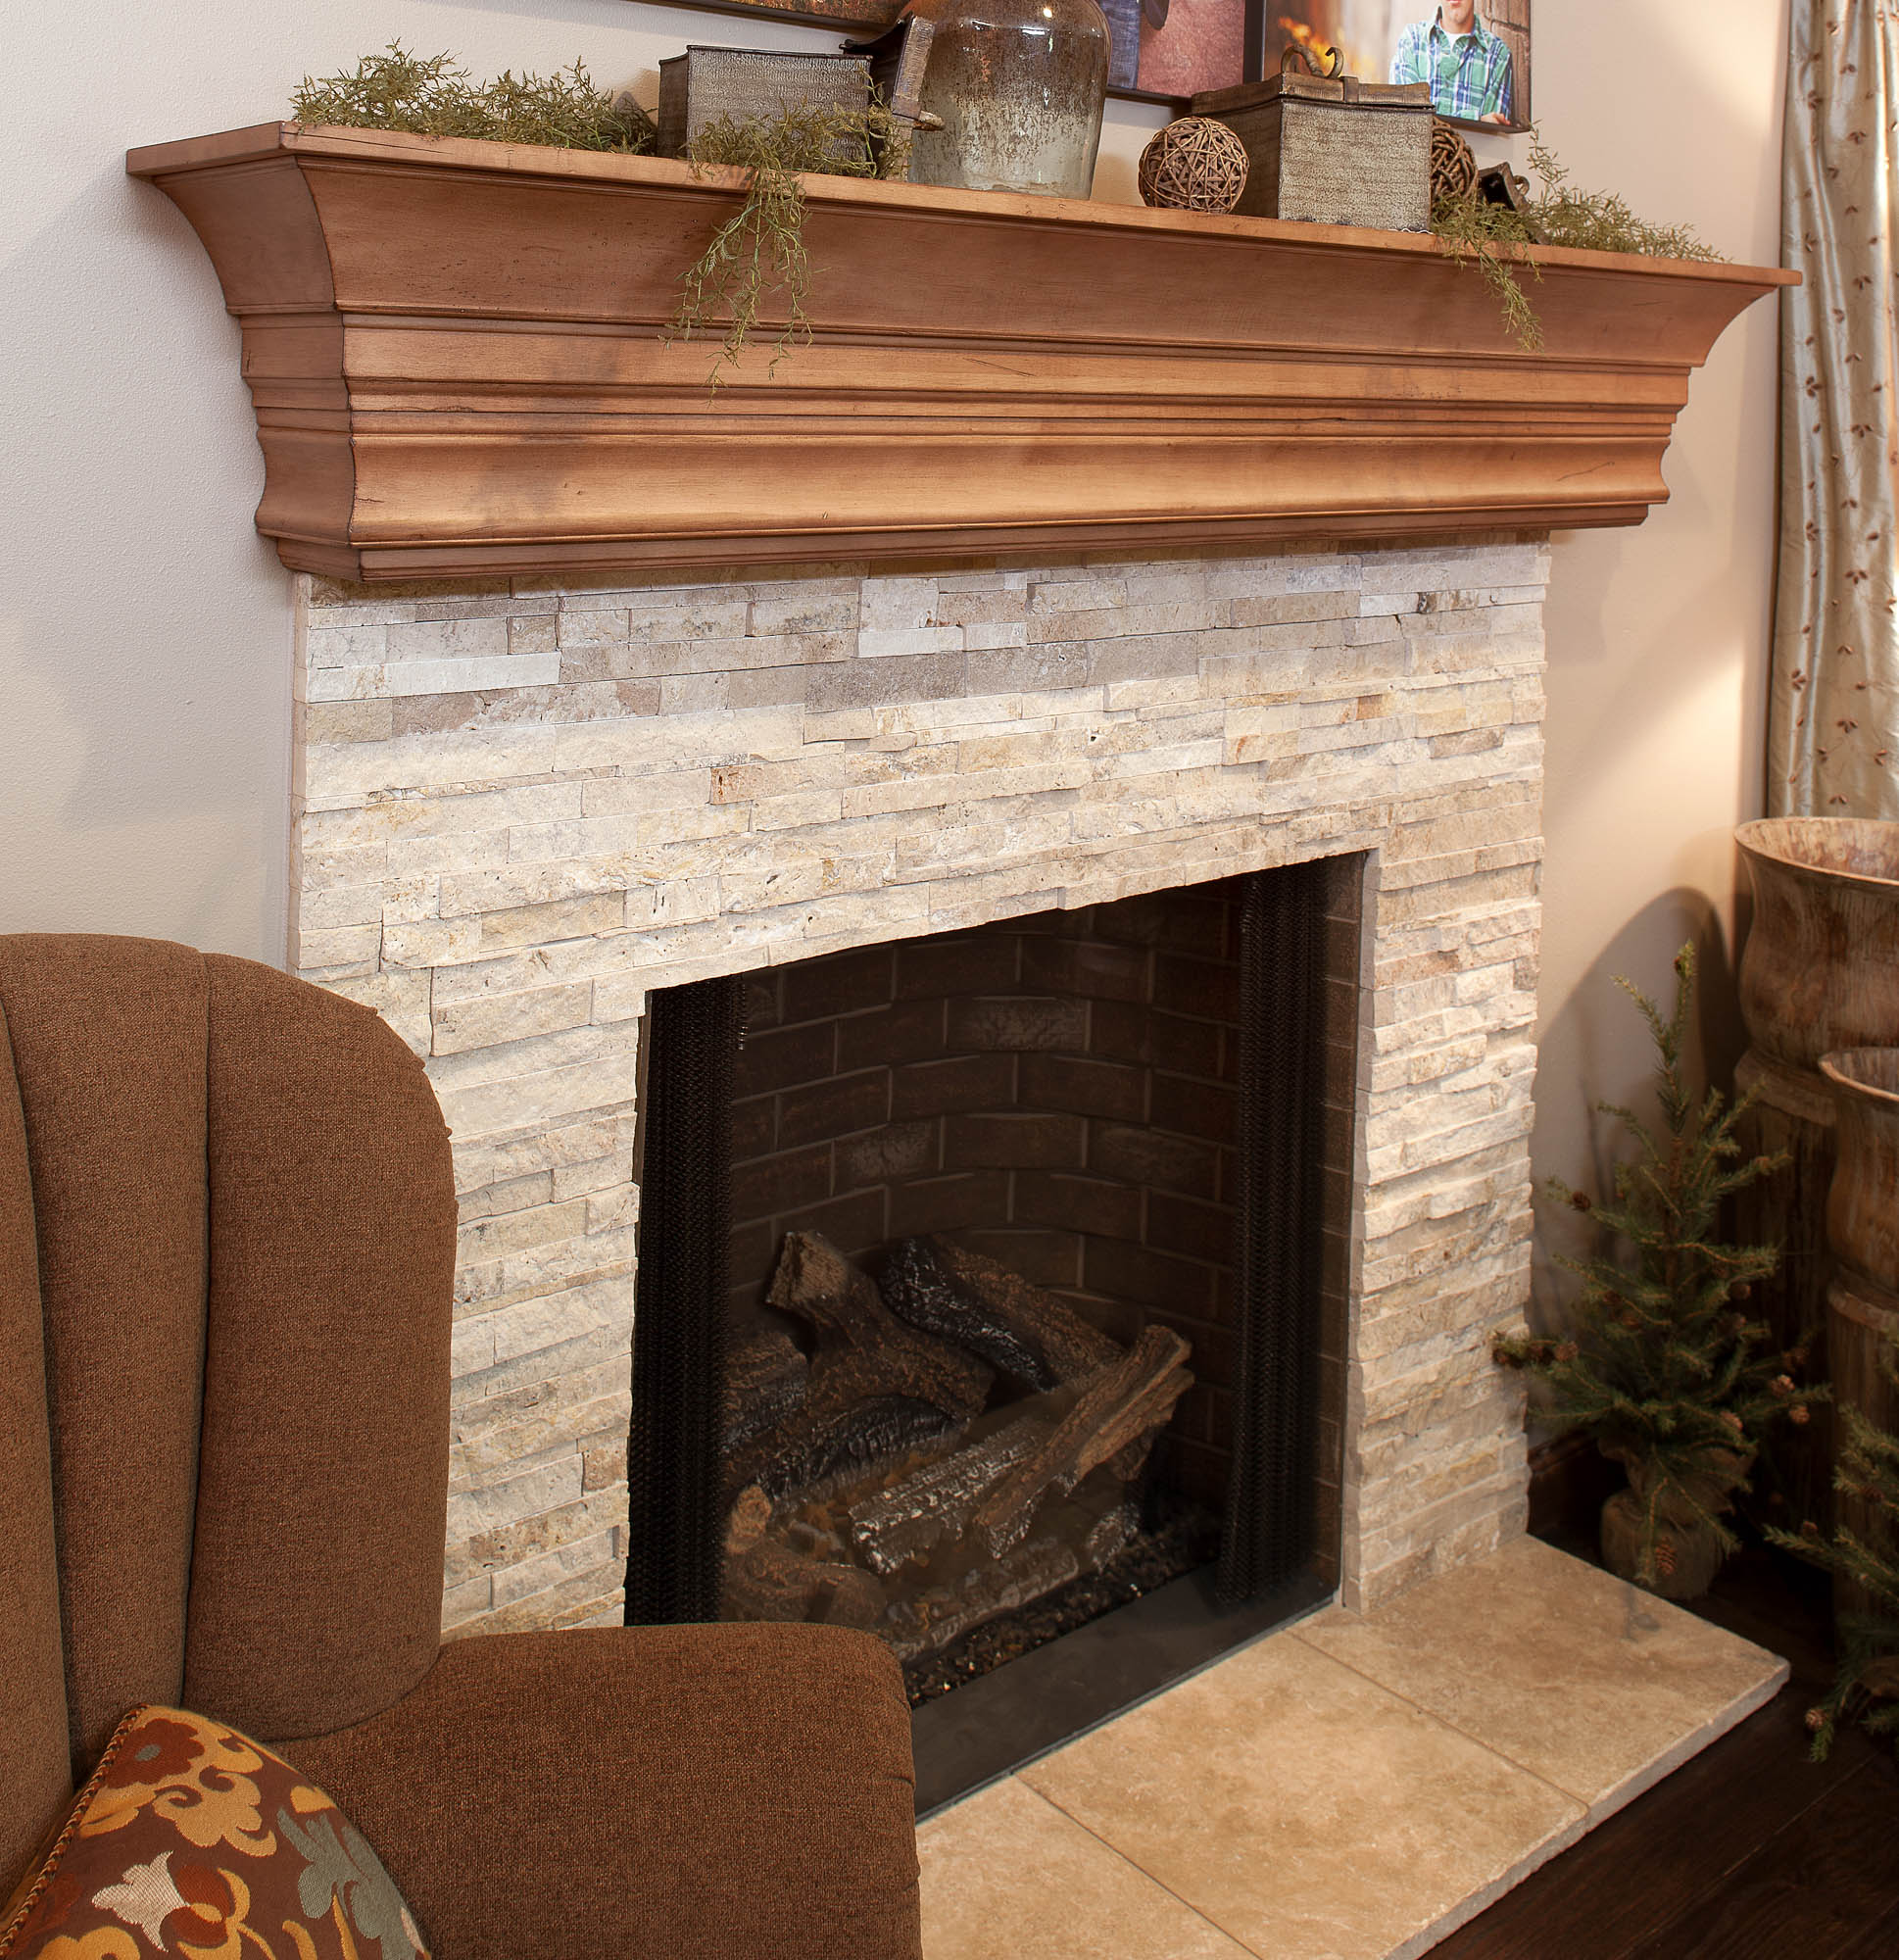 Stained family room mantle in Vintage Nutmeg by Showplace Cabinetry